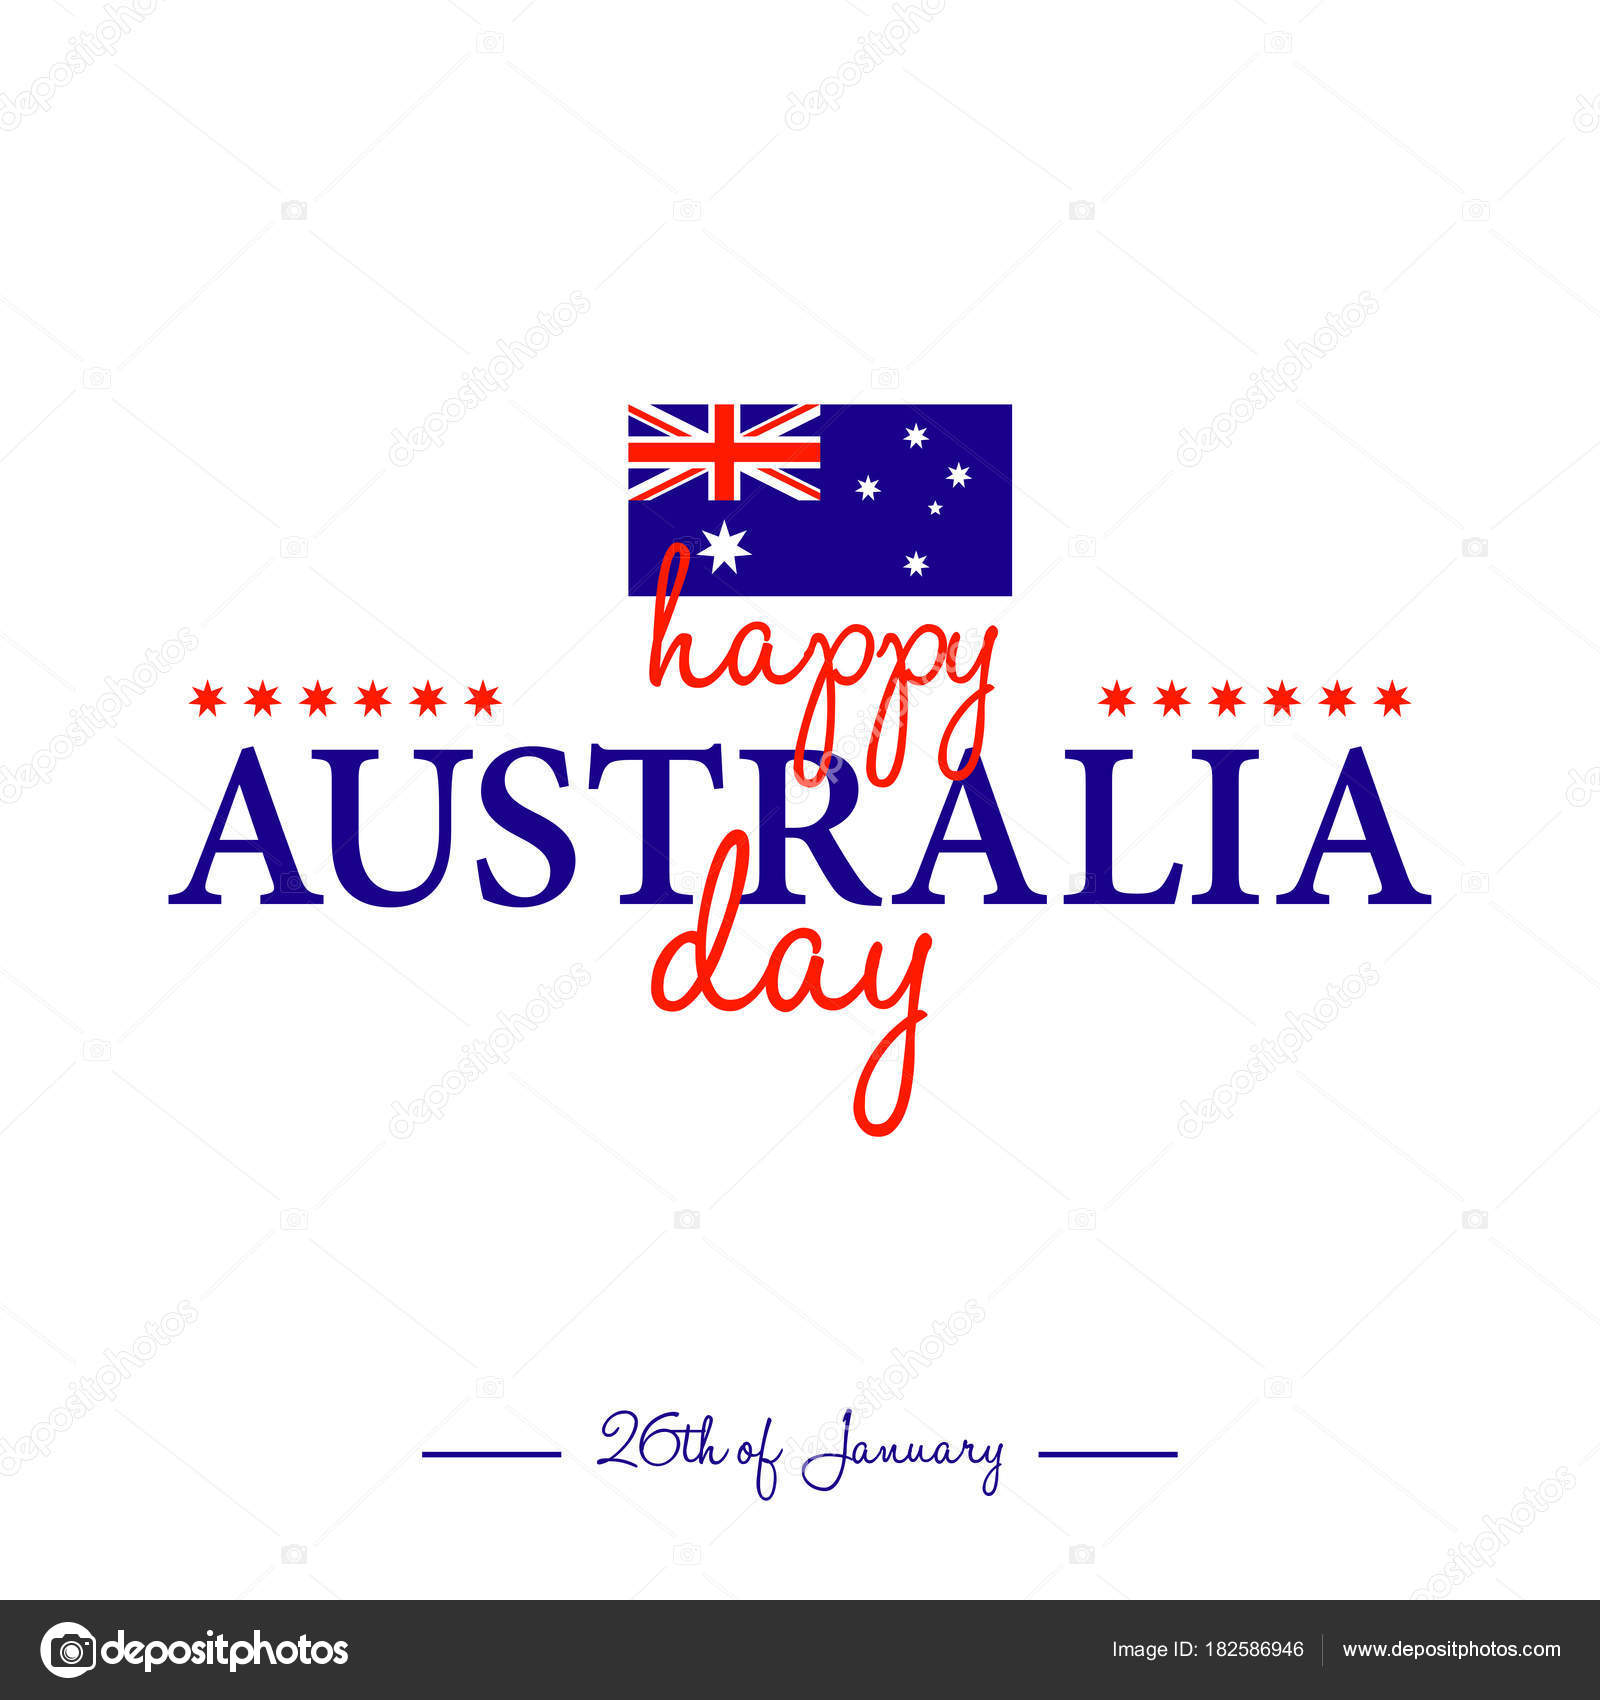 Happy australia day greeting card australian flag colors vector happy australia day greeting card australian flag colors vector illustration stock vector m4hsunfo